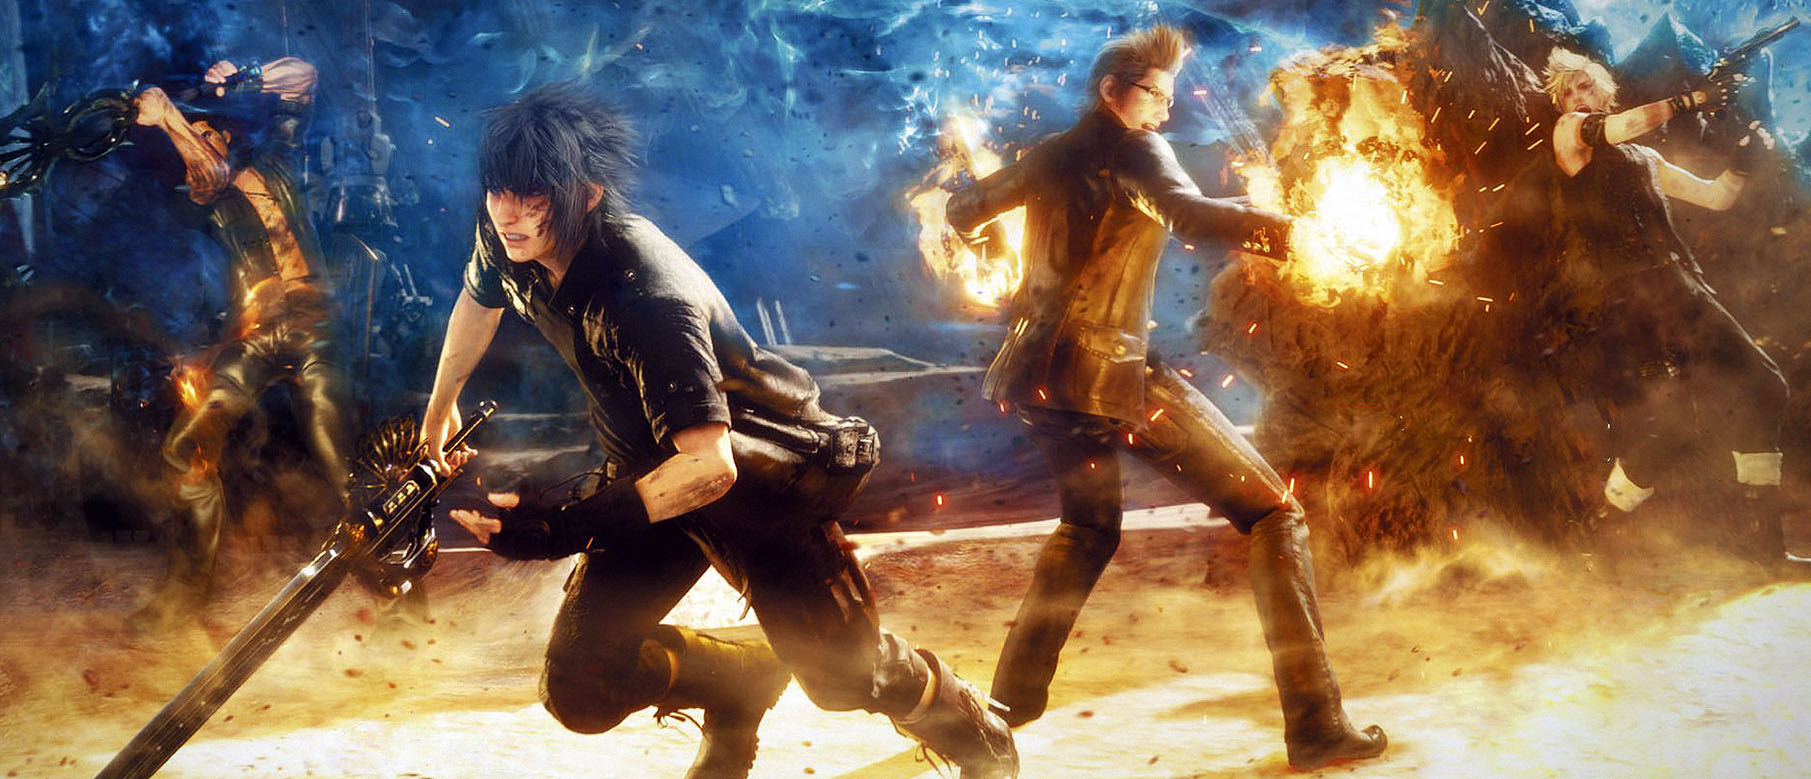 Final Fantasy Xv Wallpapers The Best 79 Images In 2018: Final Fantasy XV Wallpapers (40 Wallpapers)